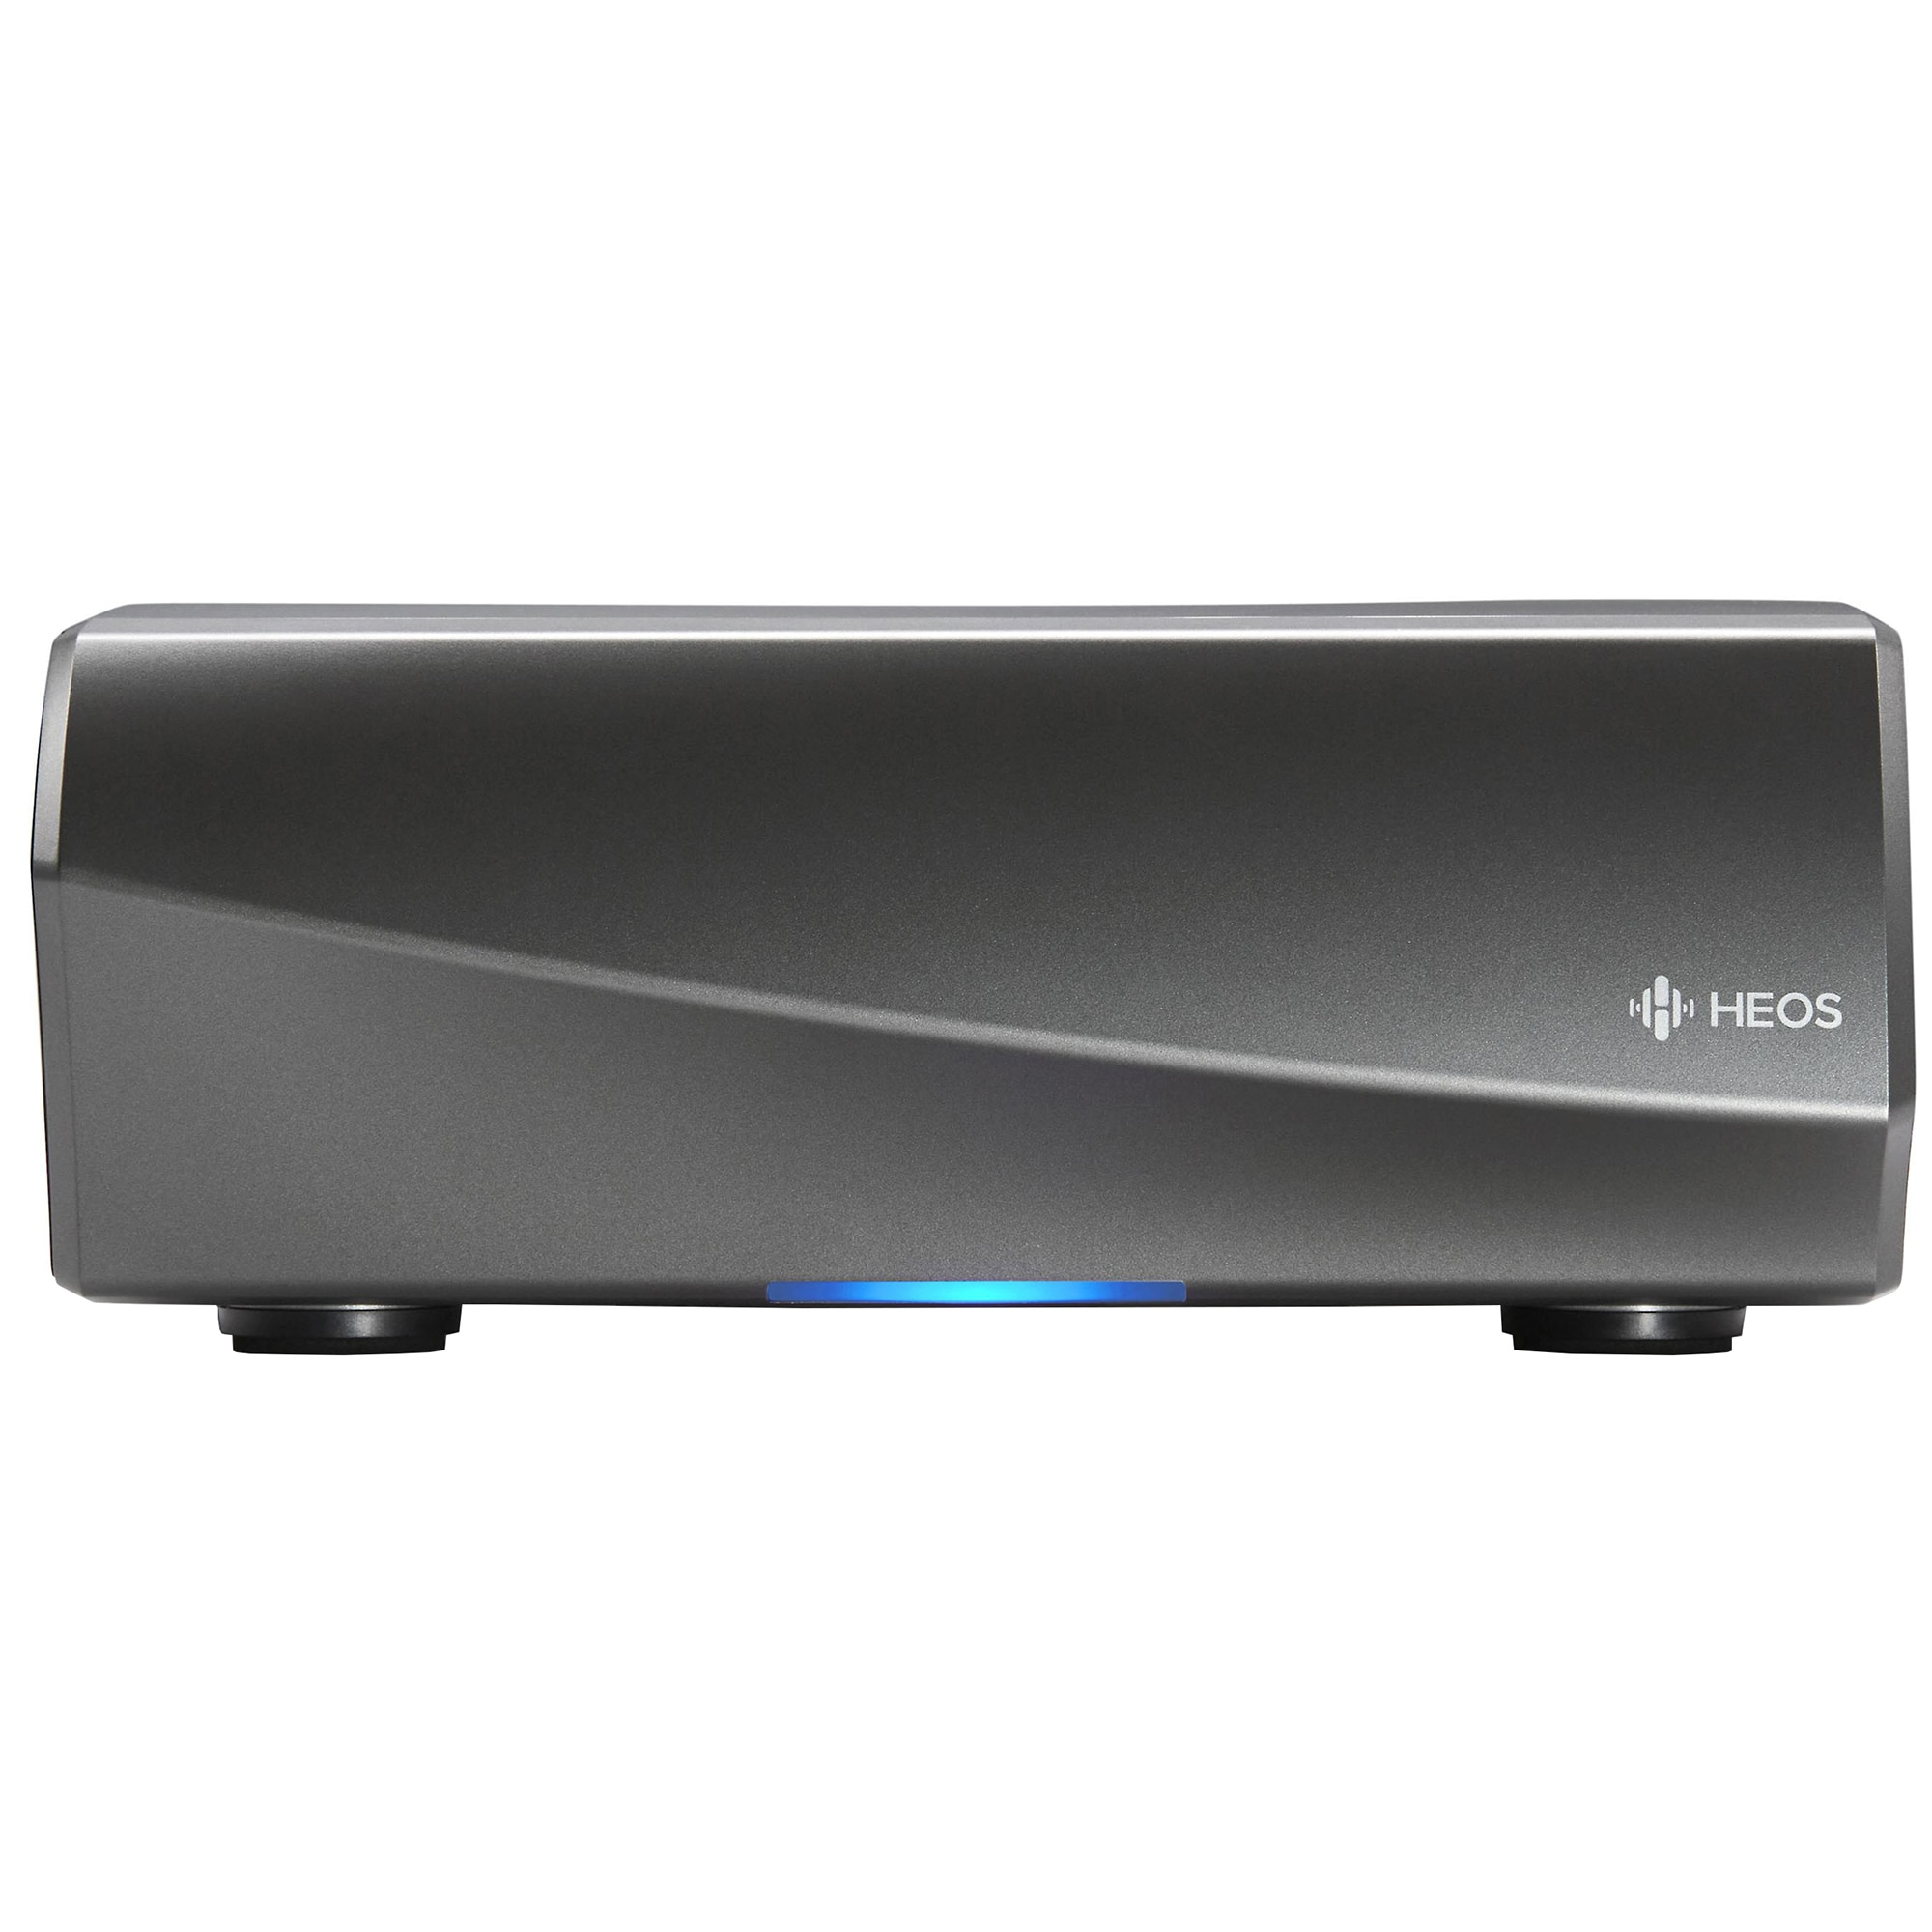 Fotografie Amplificator wireless Denon HEOS Amp HS2, Generatia 2, 2 x 100W, Wi-Fi, Bluetooth, Streaming online, Multiroom, USB, Argintiu